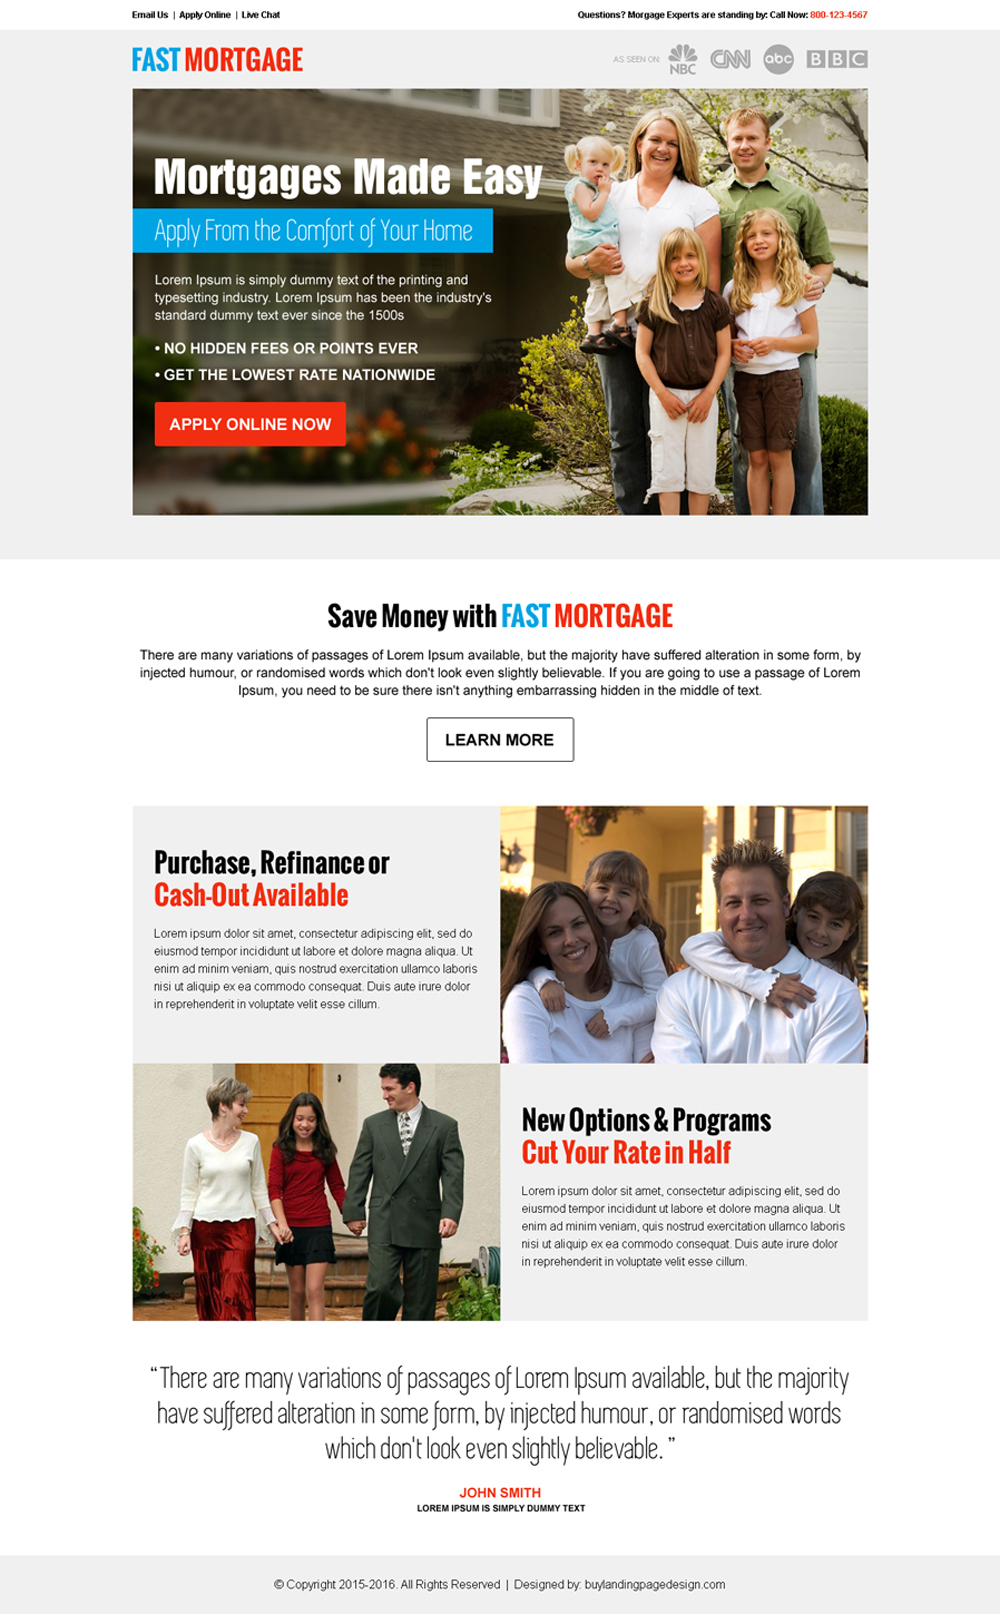 best-mortgage-services-cta-pay-per-click-converting-landing-page-design-015